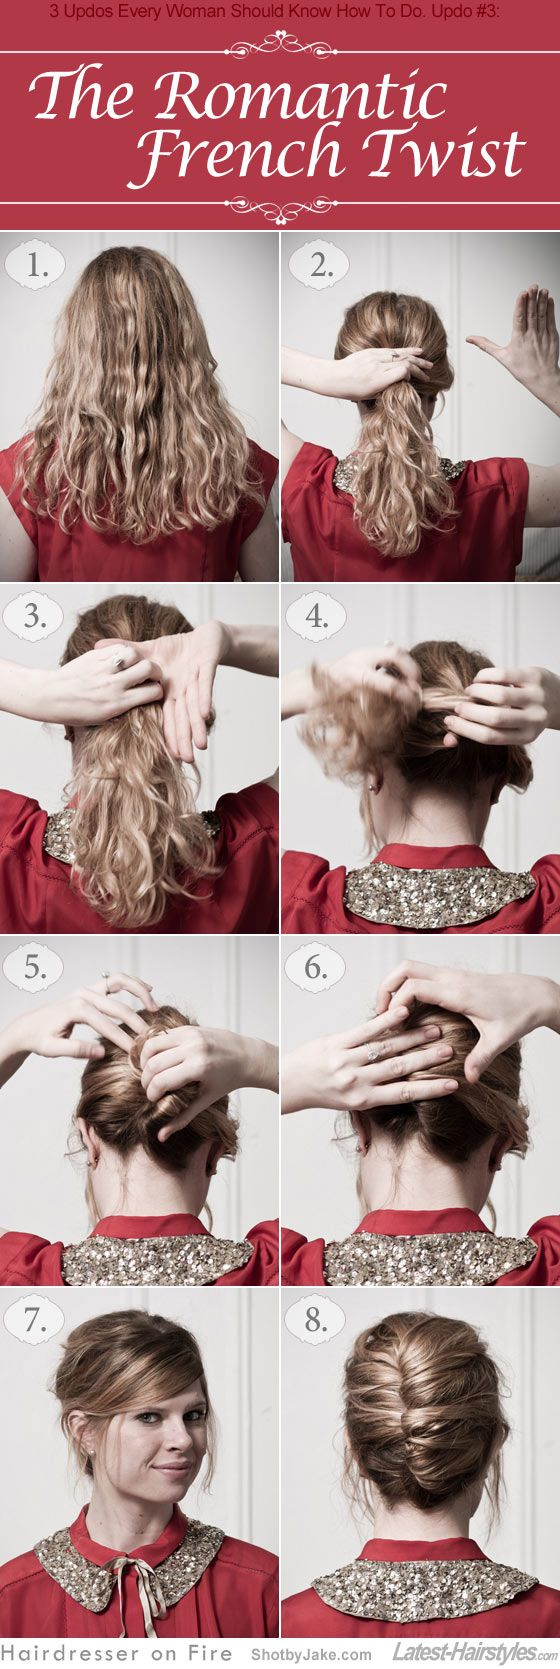 How To Do The French Twist Updo